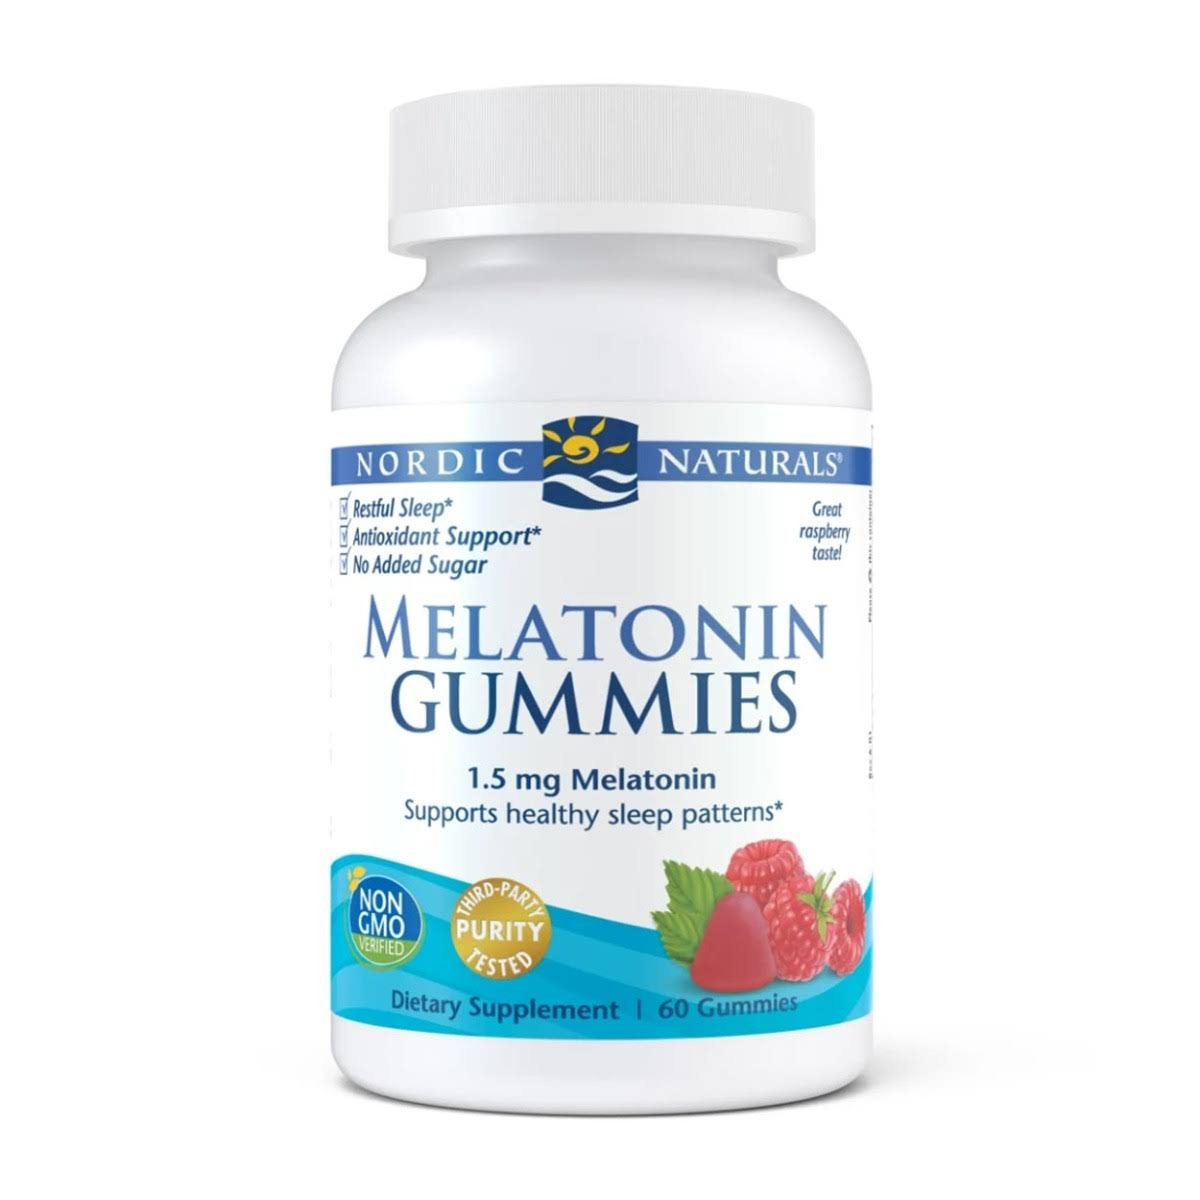 Nordic Naturals Melatonin Gummies Dietary Supplement - Raspberry Flavor, 60ct